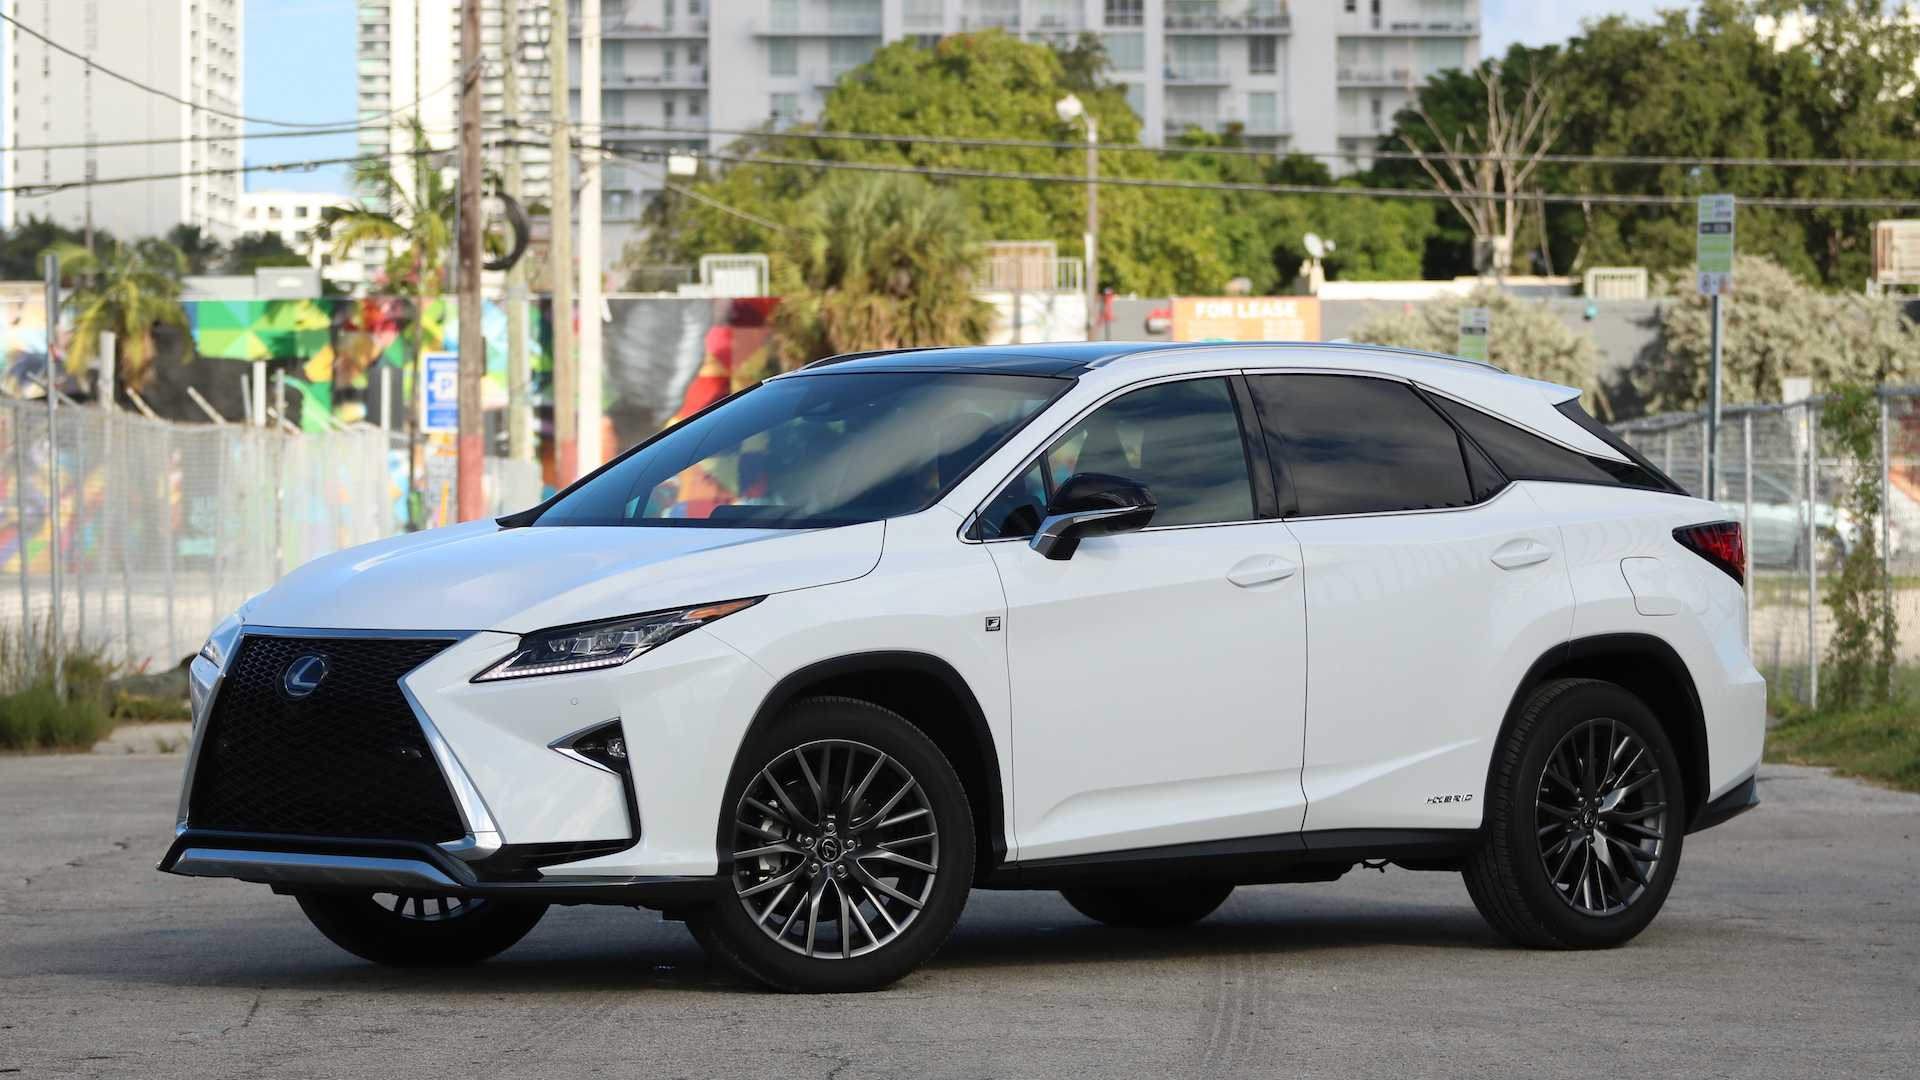 2018 Lexus Rx 450h Review The Original Luxury Crossover Suv